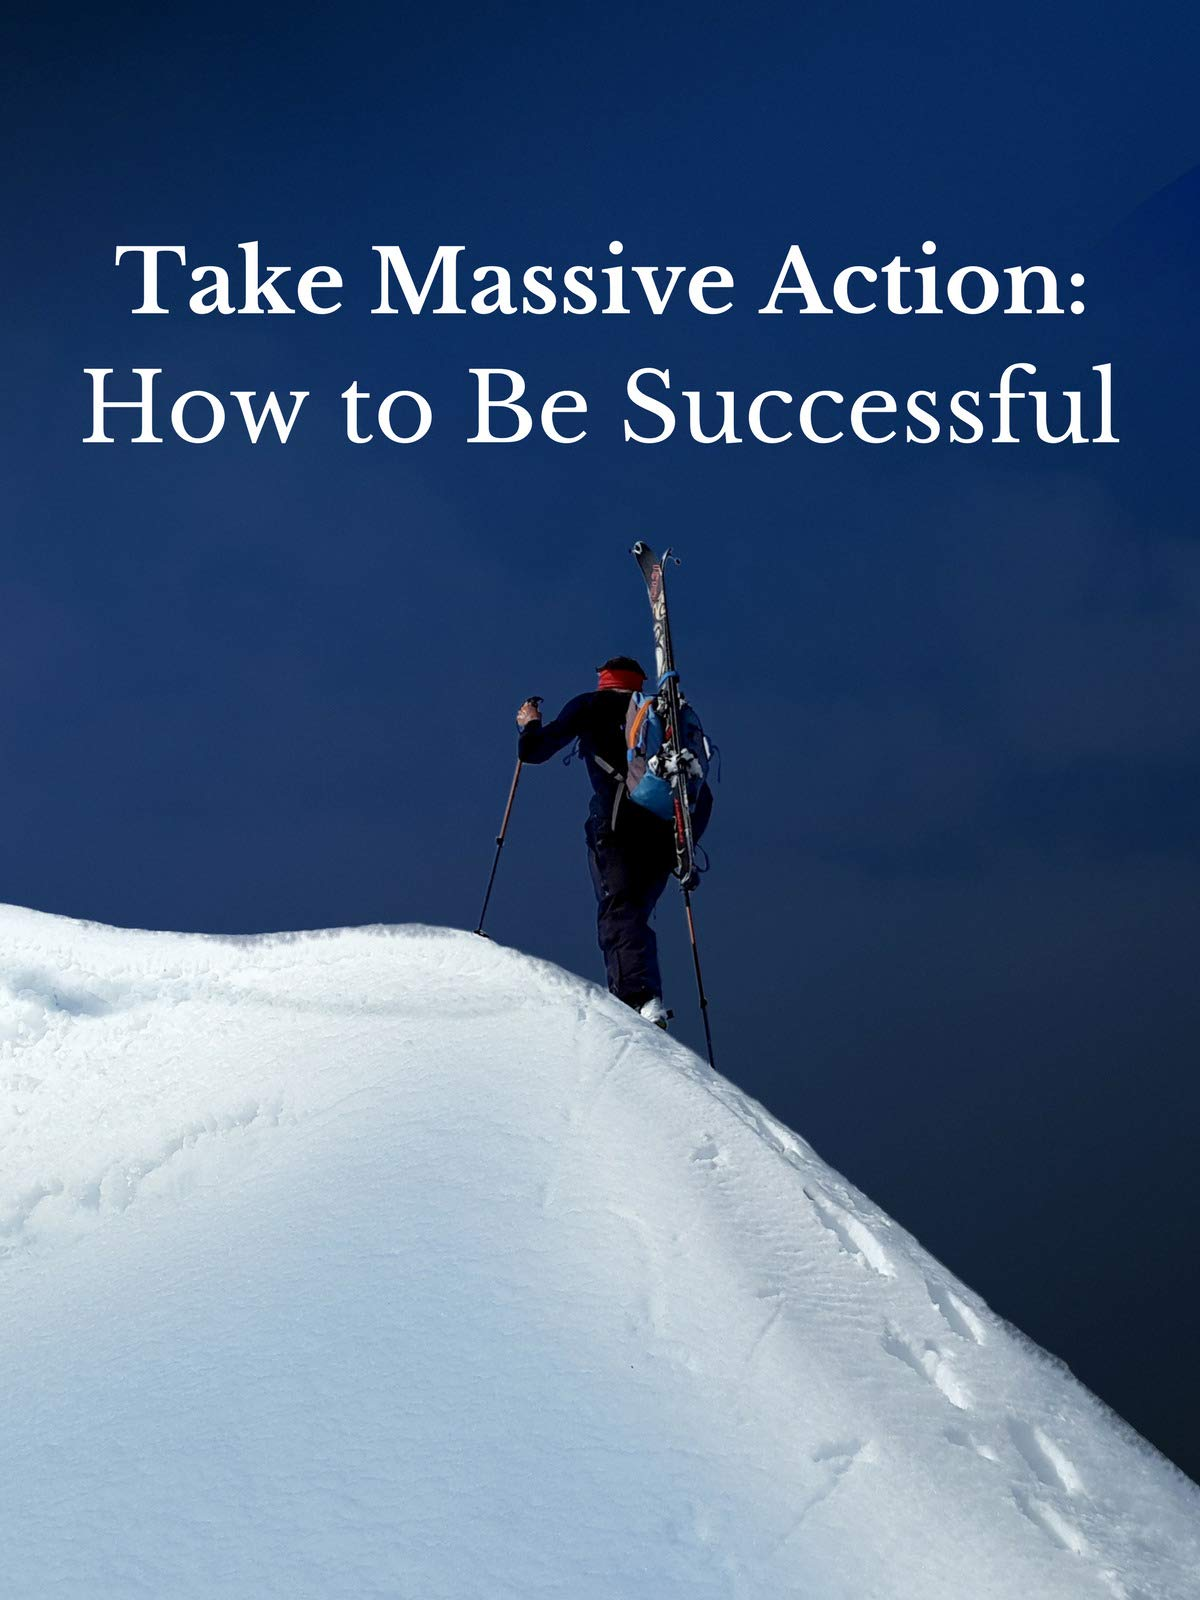 Take Massive Action: How to Be Successful